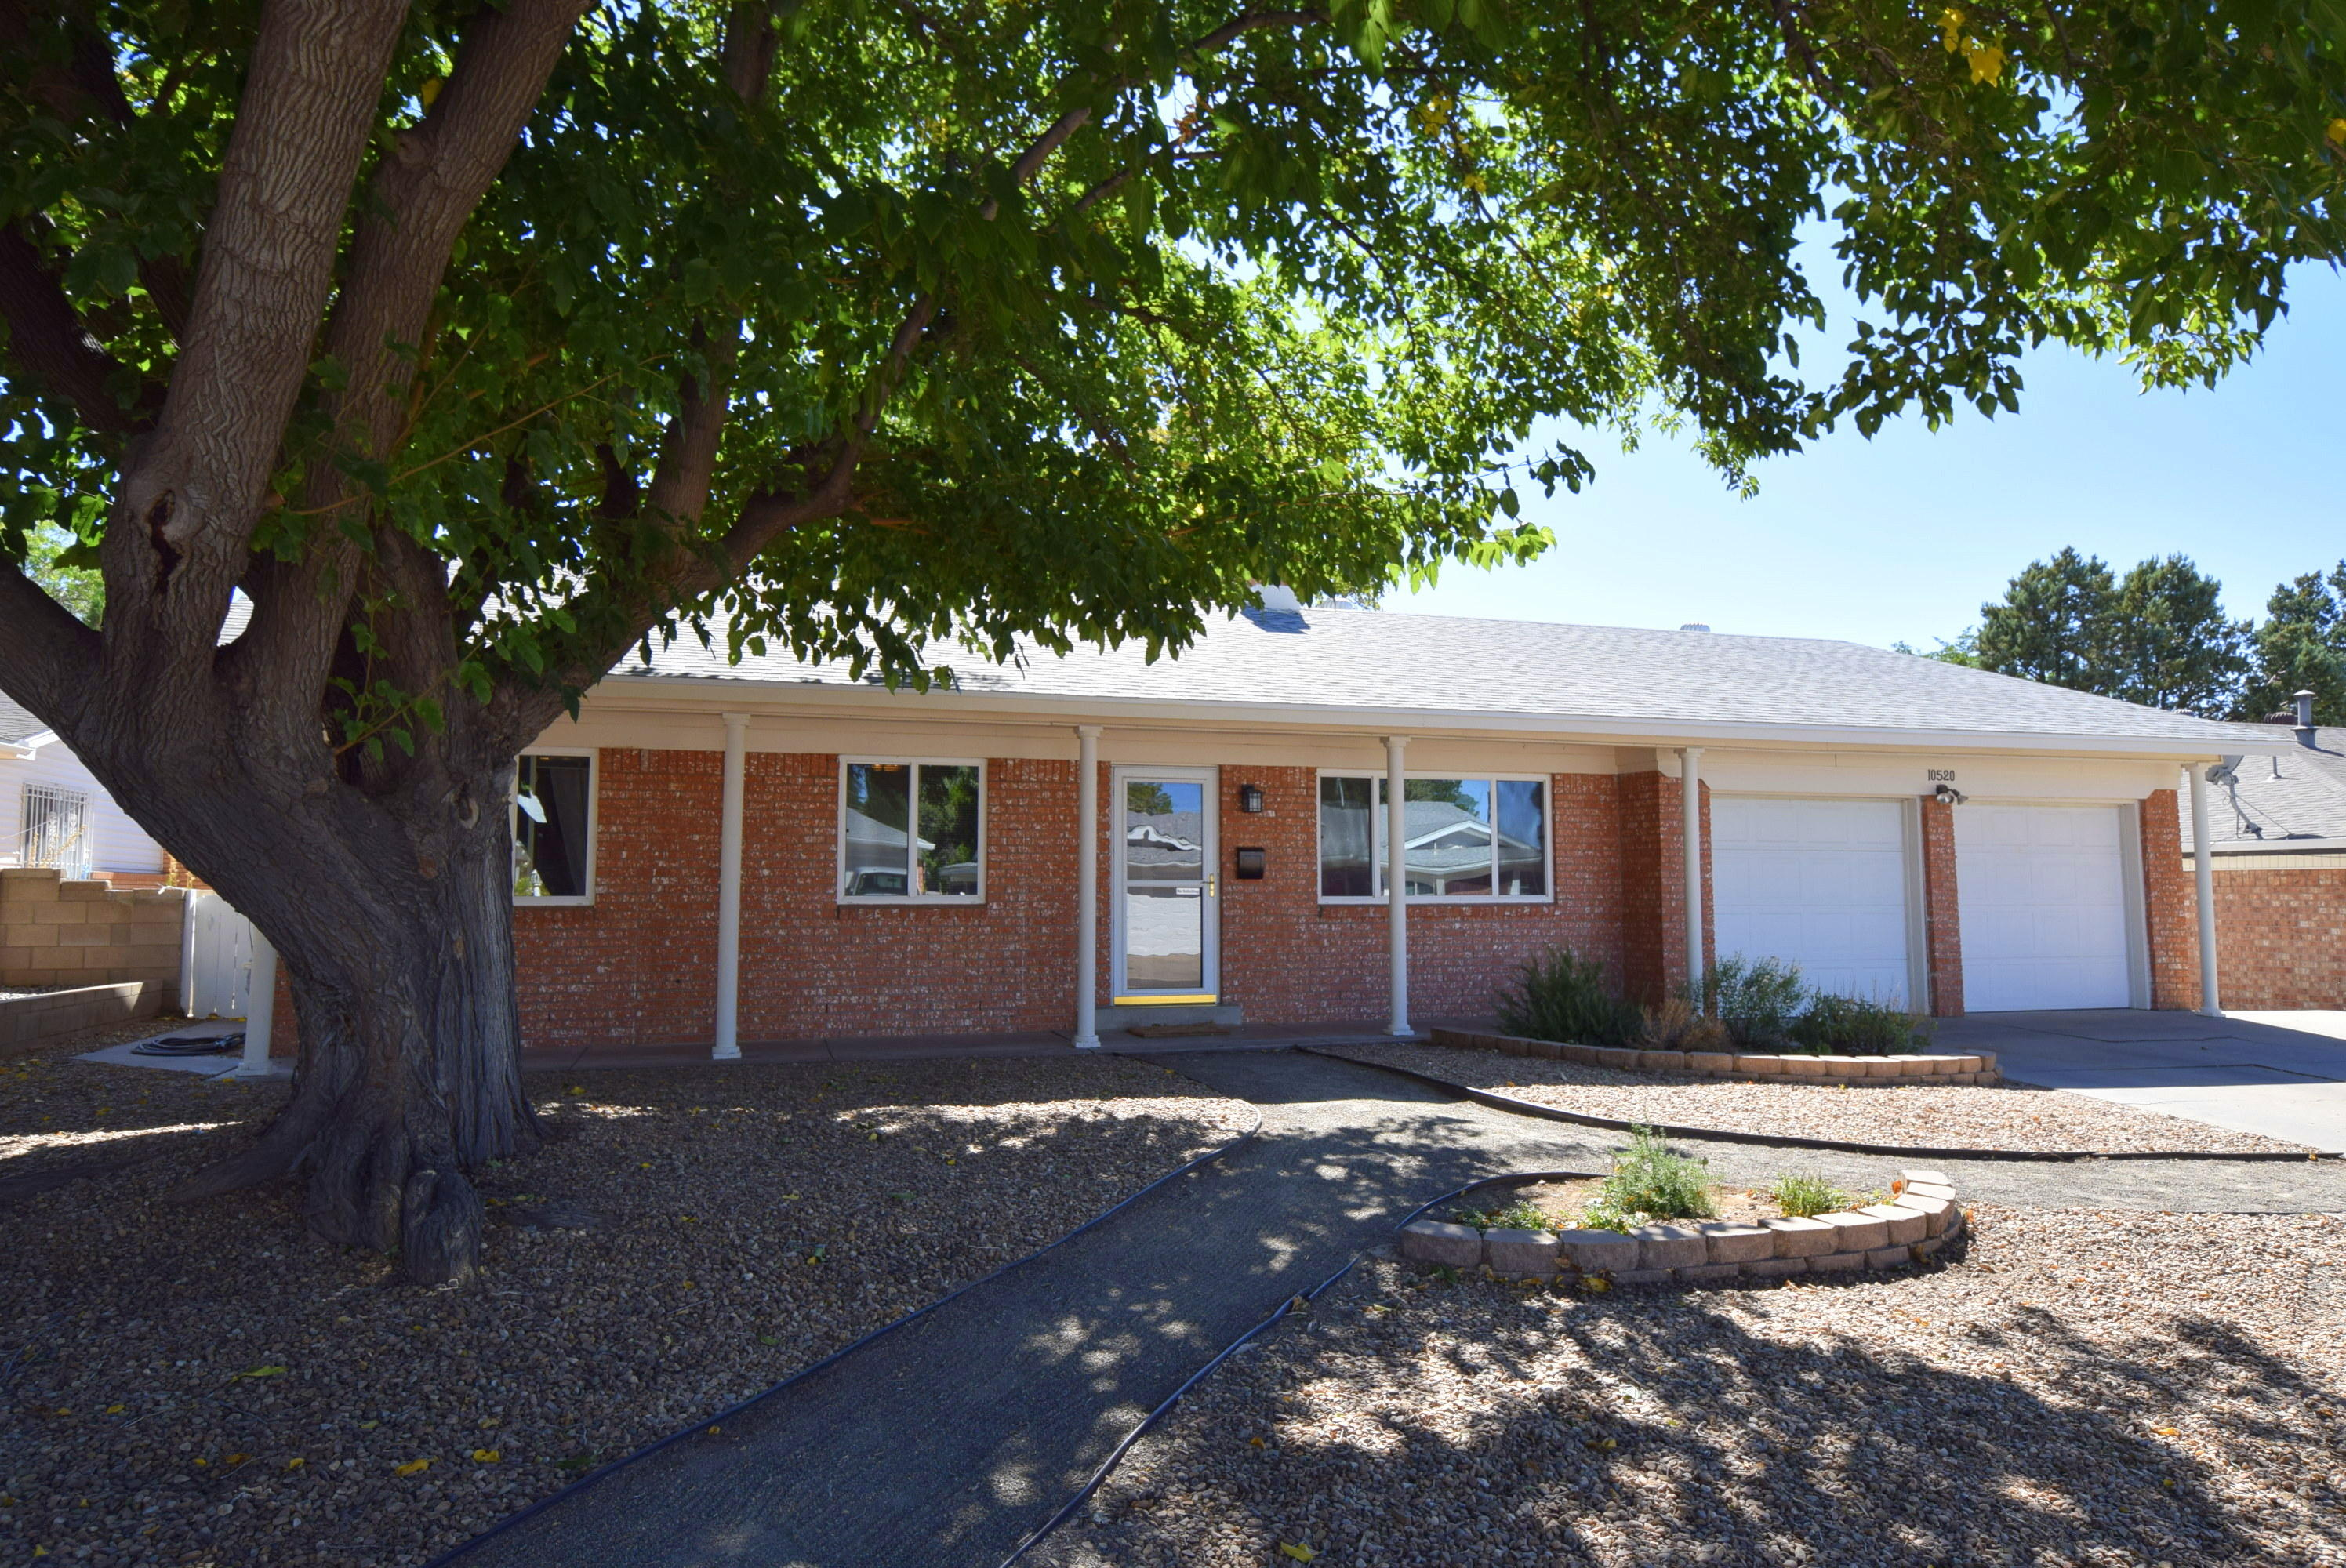 10520 CHAPALA Place NE Property Photo - Albuquerque, NM real estate listing